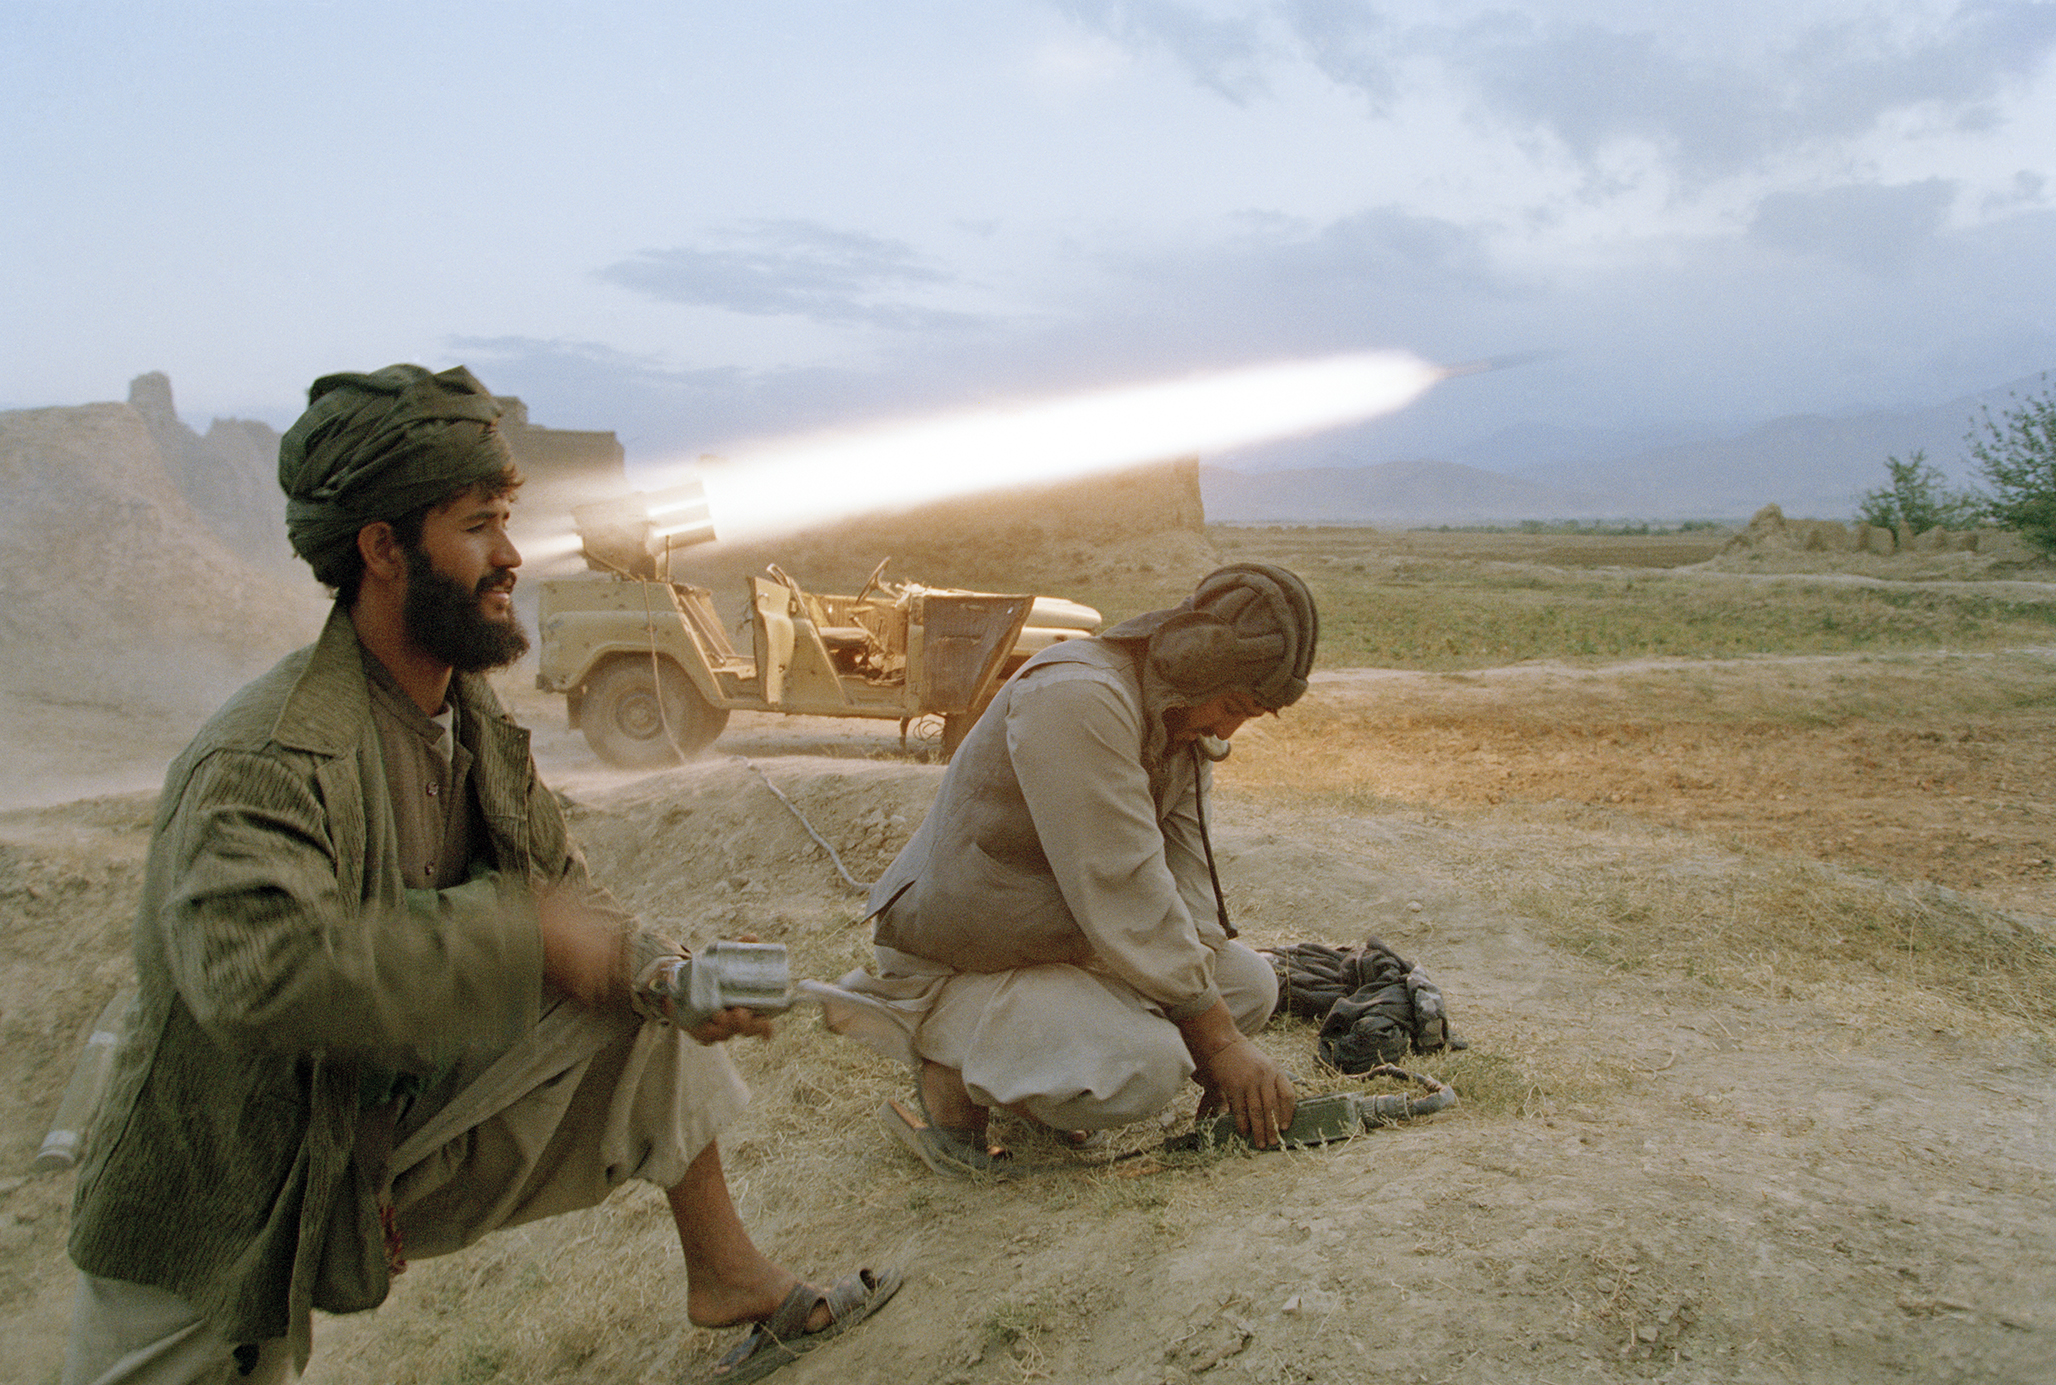 September 1996: Taliban soldiers fire a rocket at retreating forces of the Northern Alliance army north of Kabul. The capital fell to the Taliban on September 27, 1996. The Kabul government's defenses collapsed with little resistance to the Taliban advance.